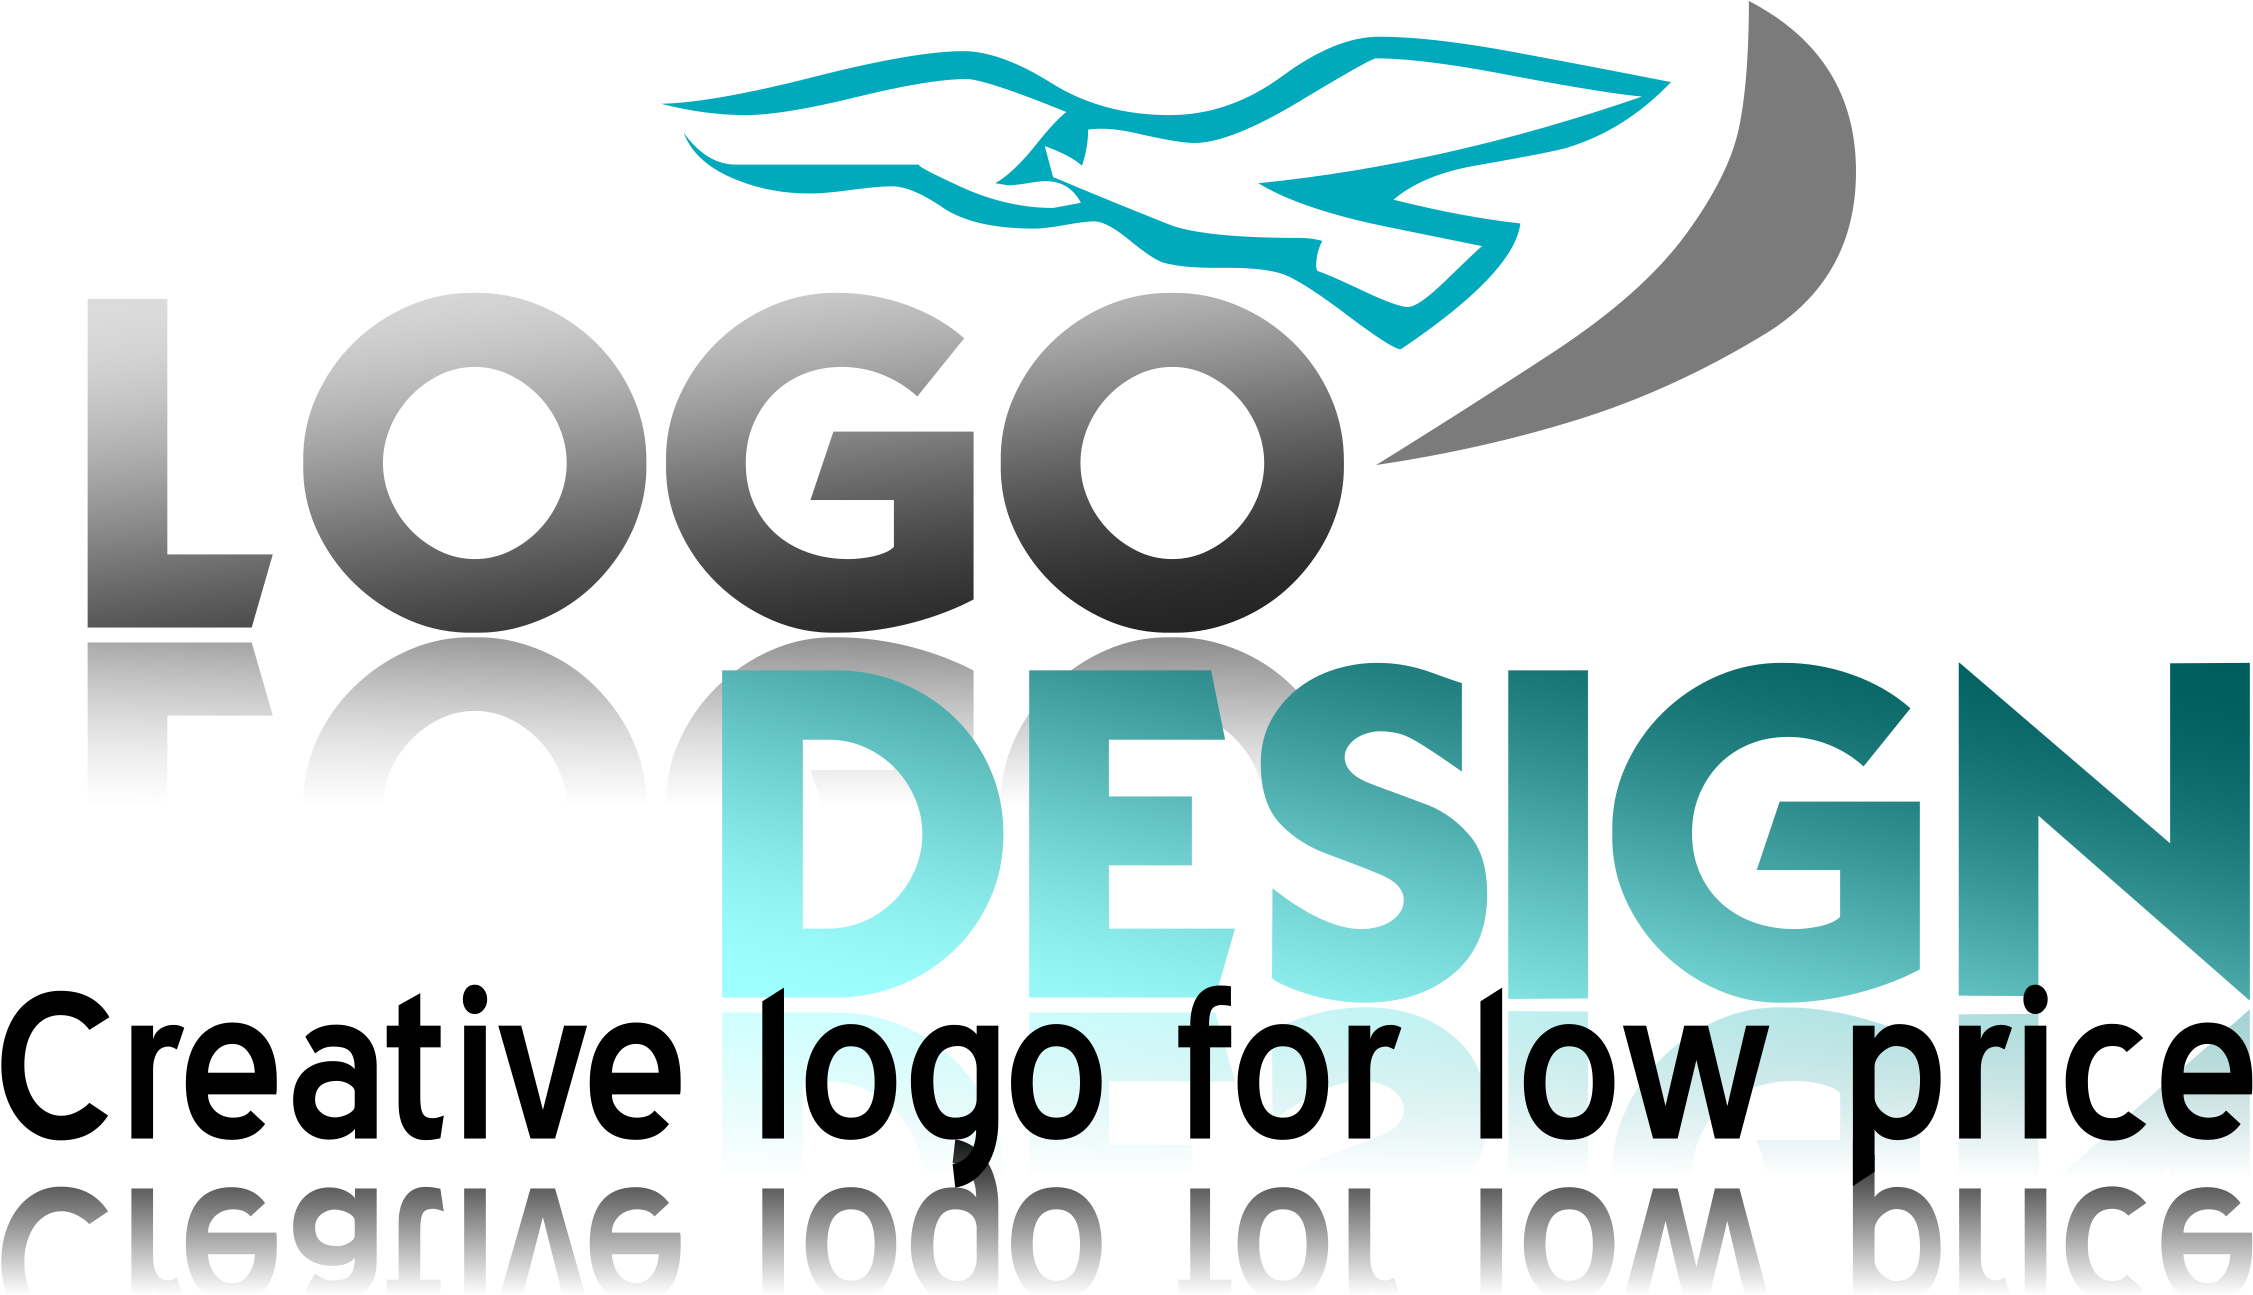 make creative logo for low price